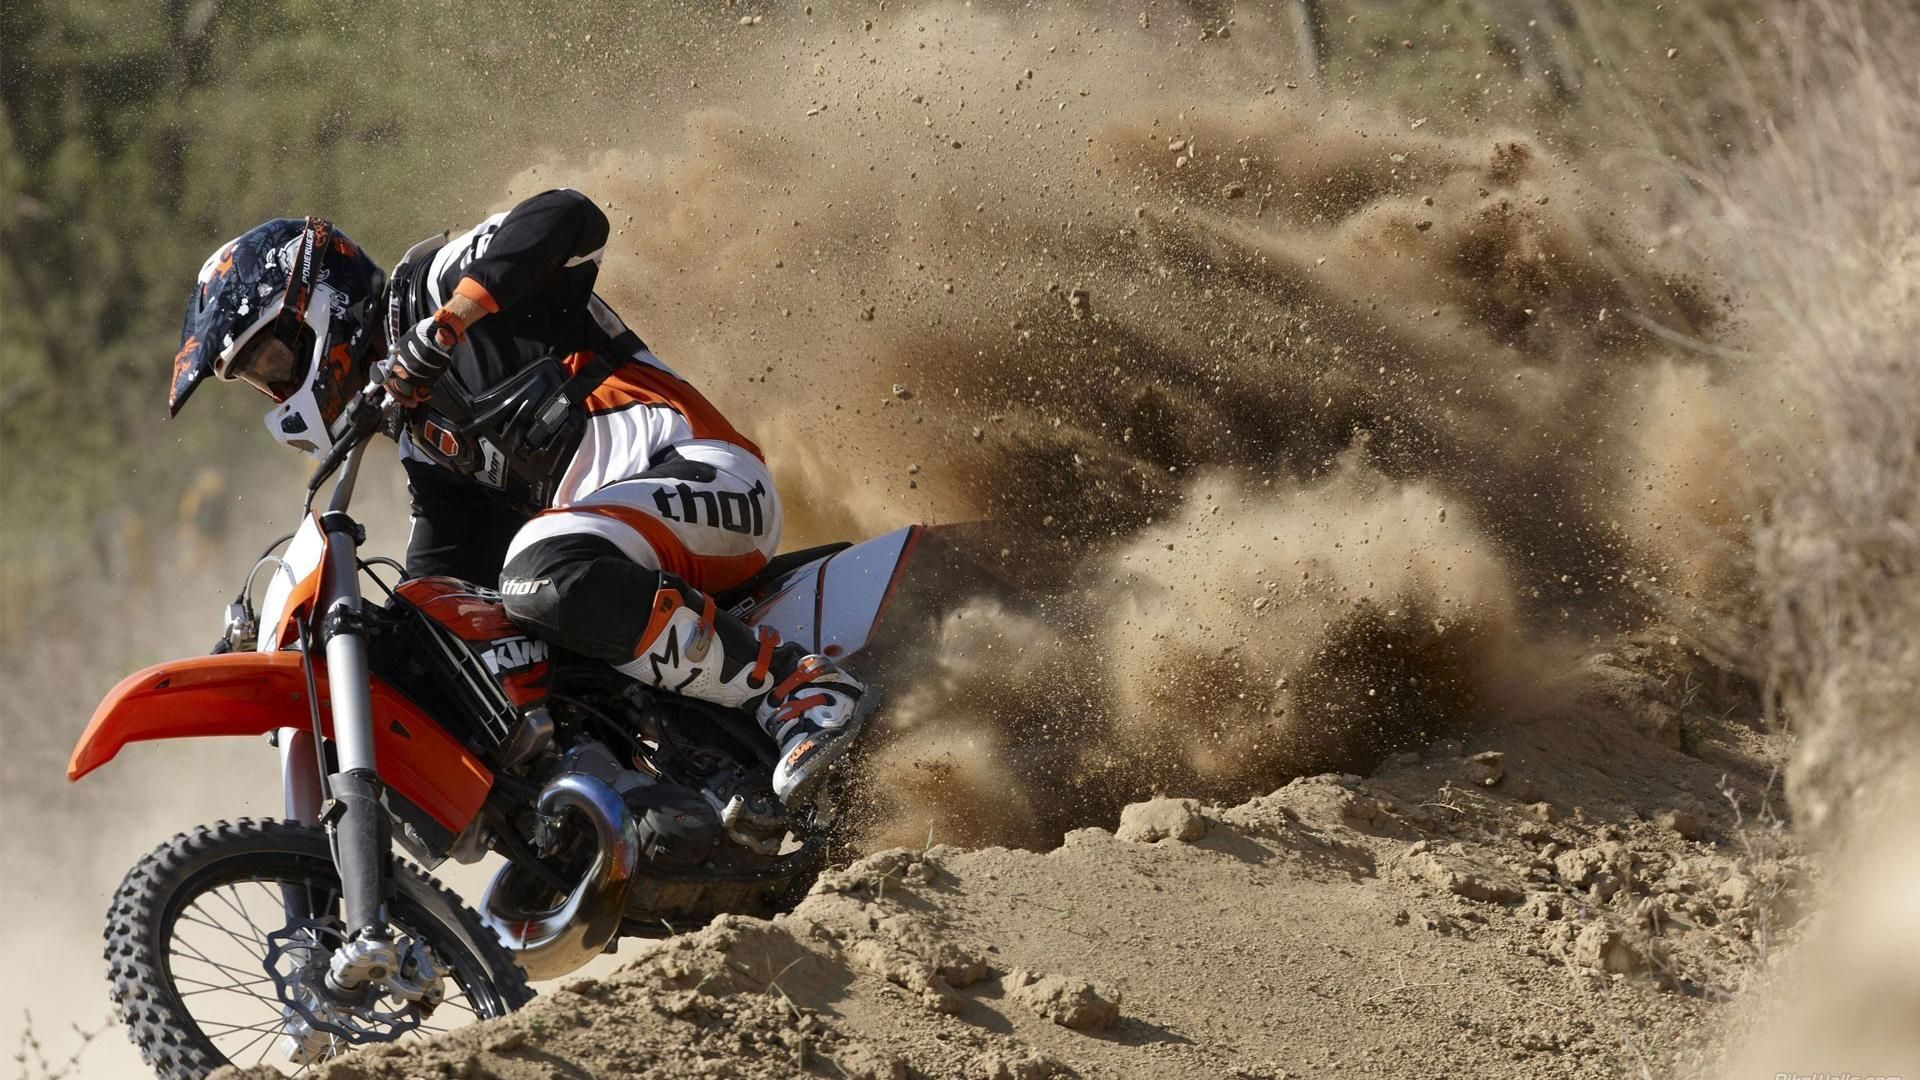 Motocross Ktm Bike Hd Wallpapers Ktm Motocross Cool Dirt Bikes